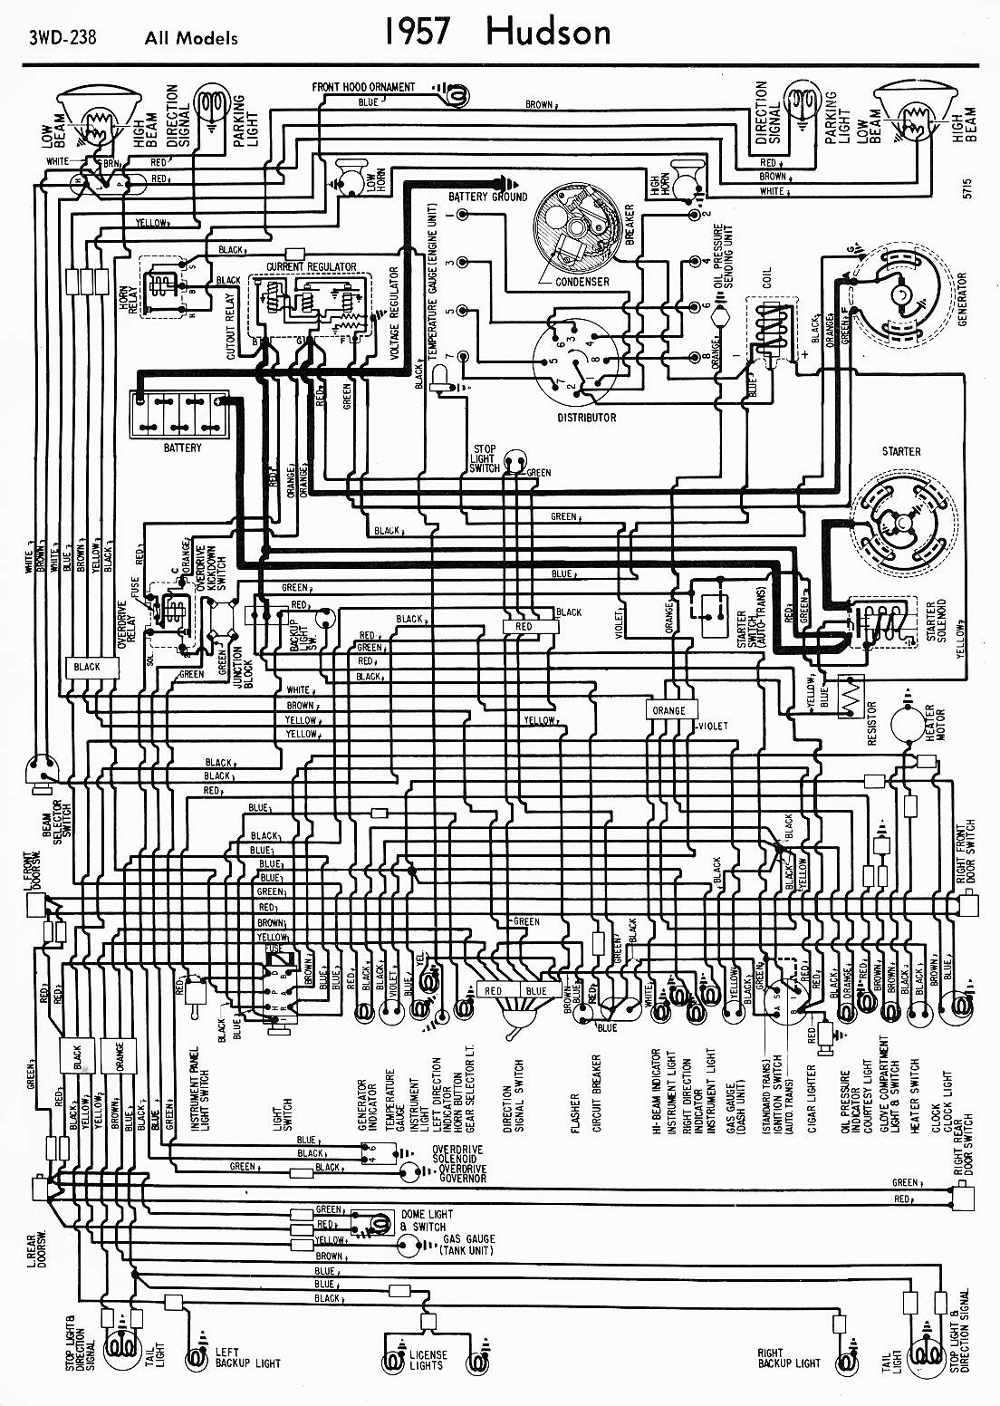 Hudson Car Manuals Wiring Diagrams Pdf Fault Codes 2013 Cadillac Wire Diagram Download